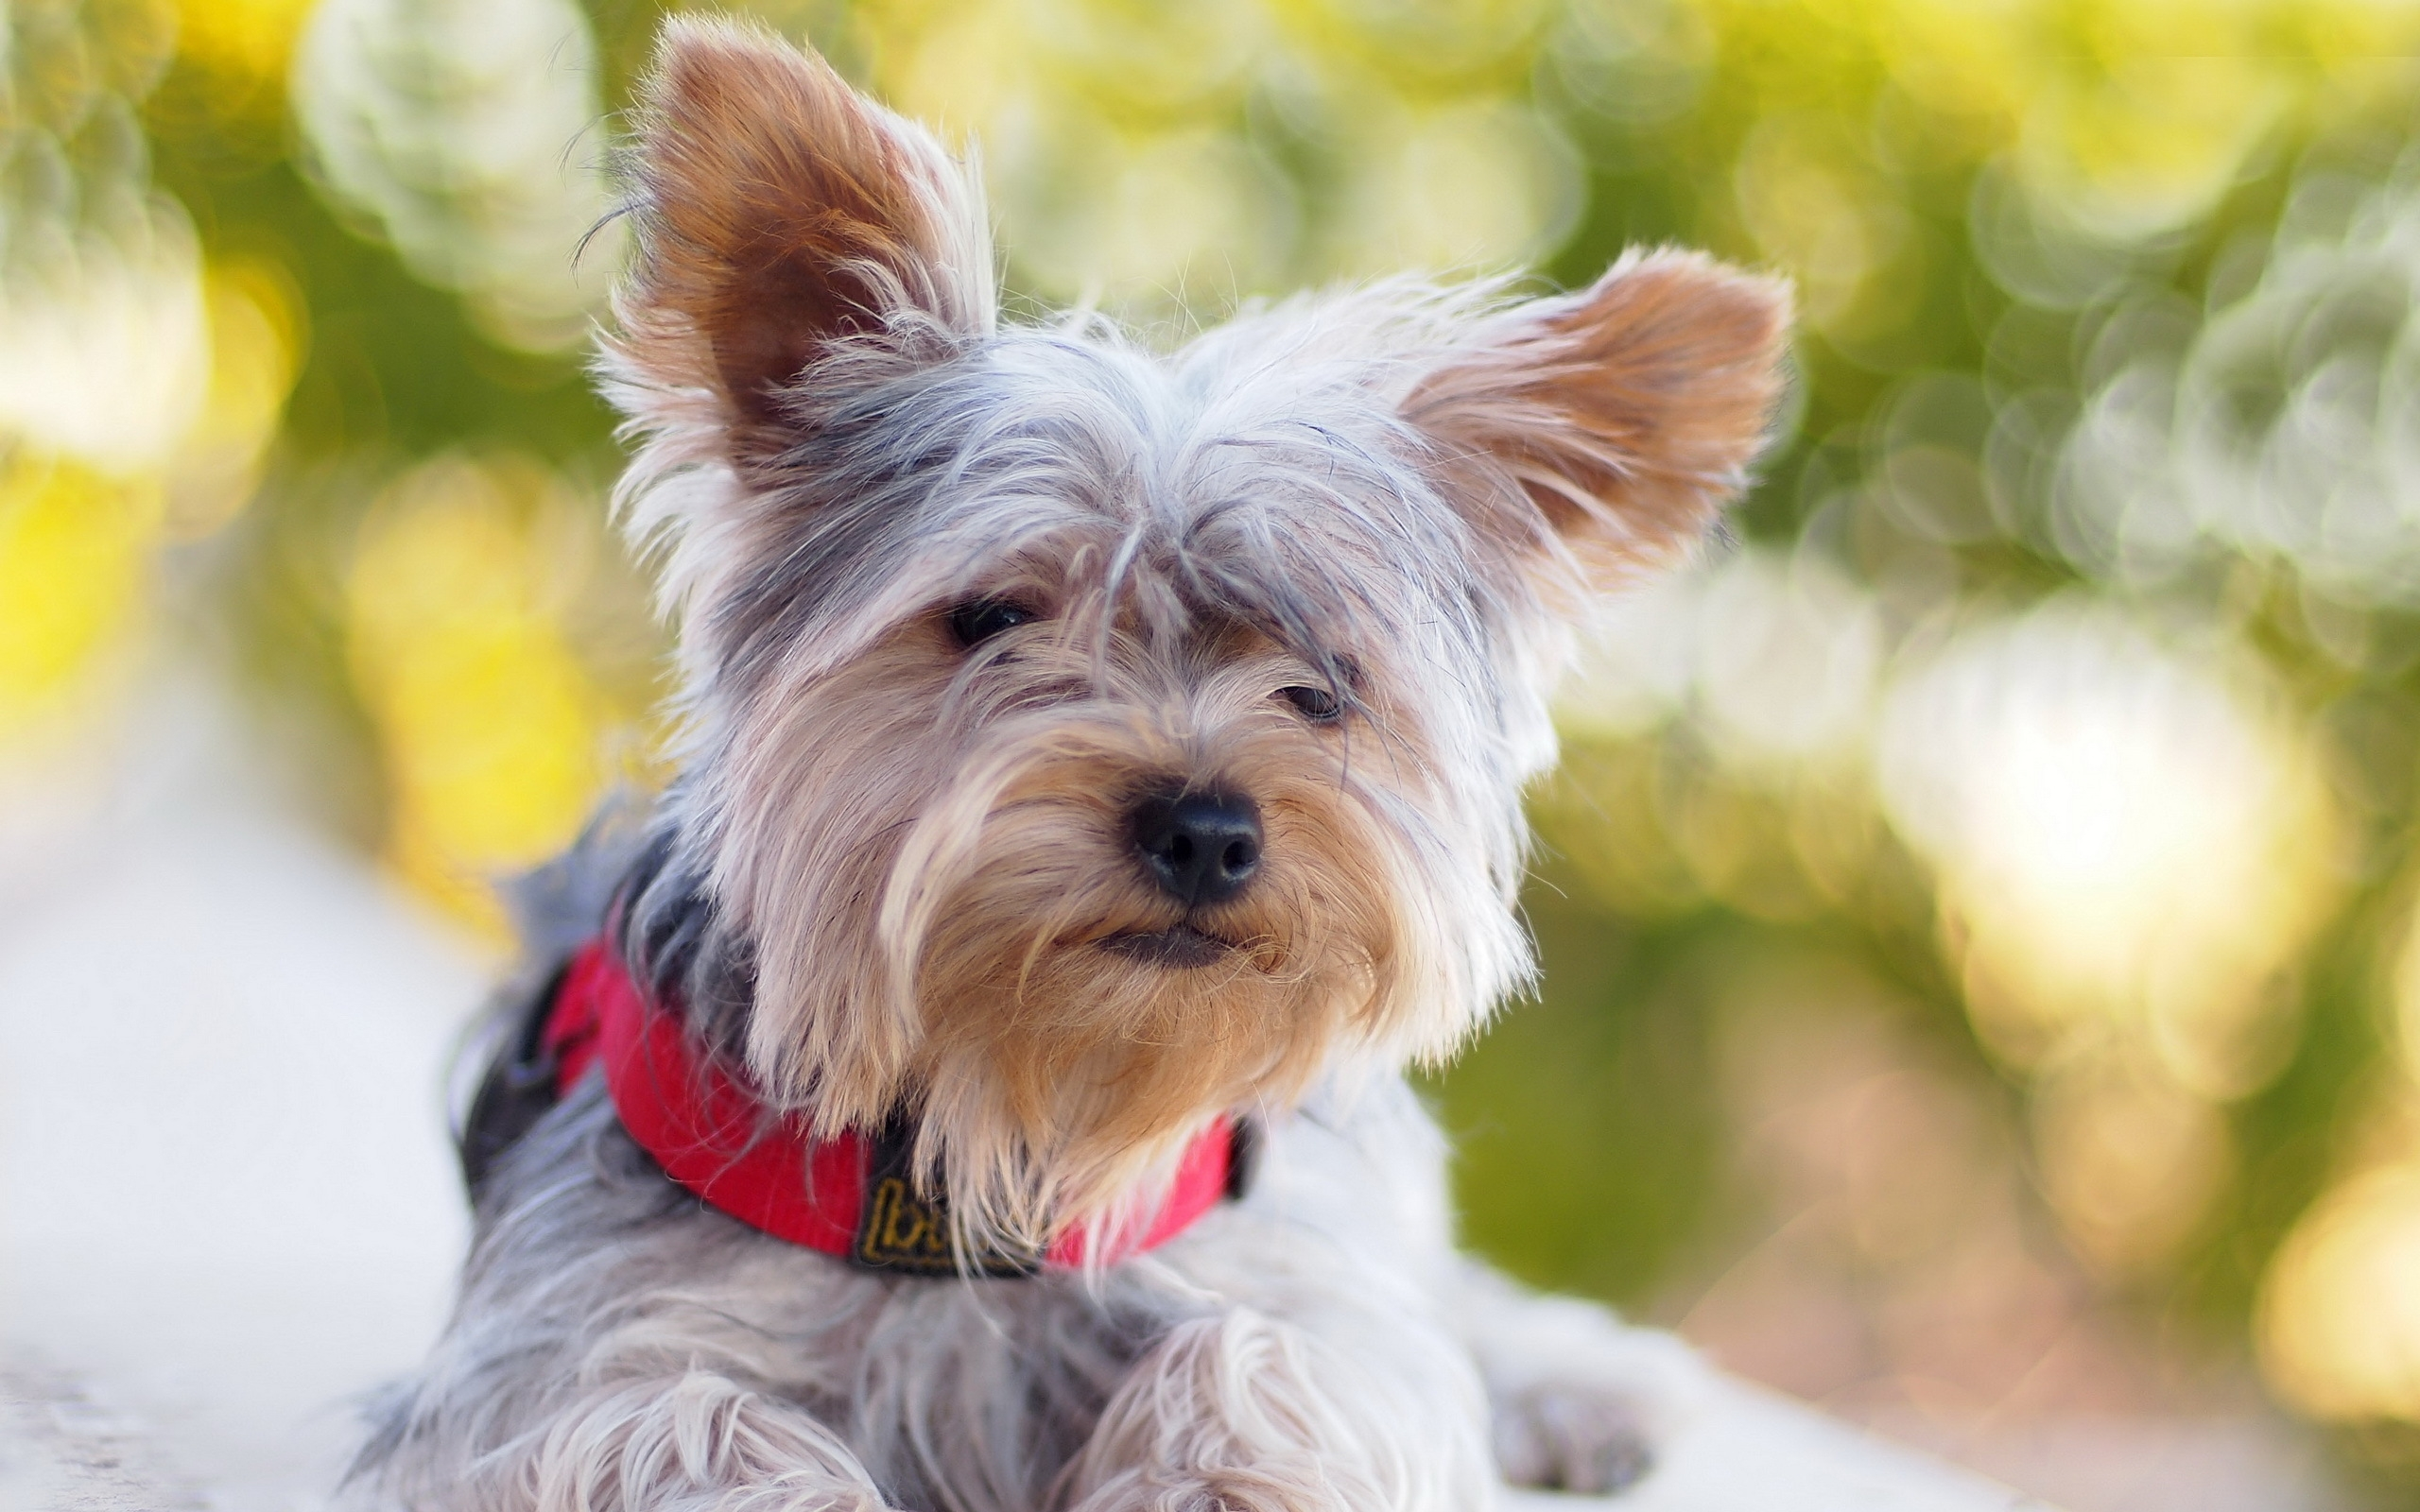 Lovely Yorkie Puppies Wallpaper High Definition High Quality Widescreen